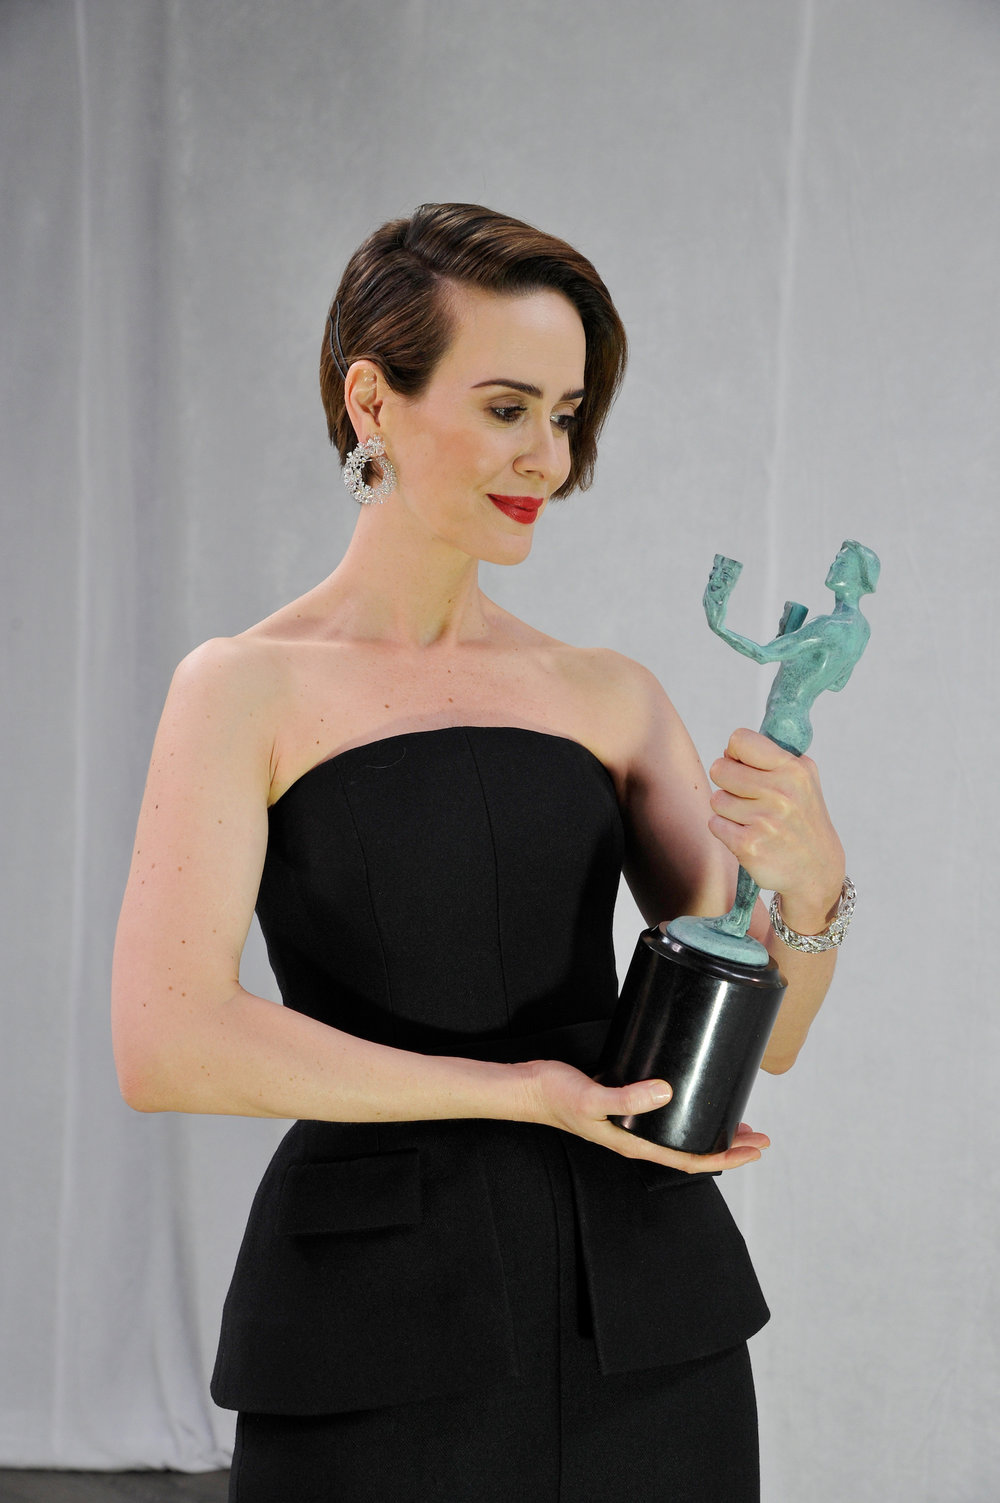 LOS ANGELES, CA - JANUARY 29: Actor Sarah Paulson, winner of the Outstanding Performance by a Female Actor in a Miniseries or Television Movie award for 'The People v. O. J. Simpson: American Crime Story,' poses in the press room The 23rd Annual Screen Actors Guild Awards at The Shrine Auditorium on January 29, 2017 in Los Angeles, California. 26592_018  (Photo by John Sciulli/Getty Images for TNT) *** Local Caption *** Sarah Paulson